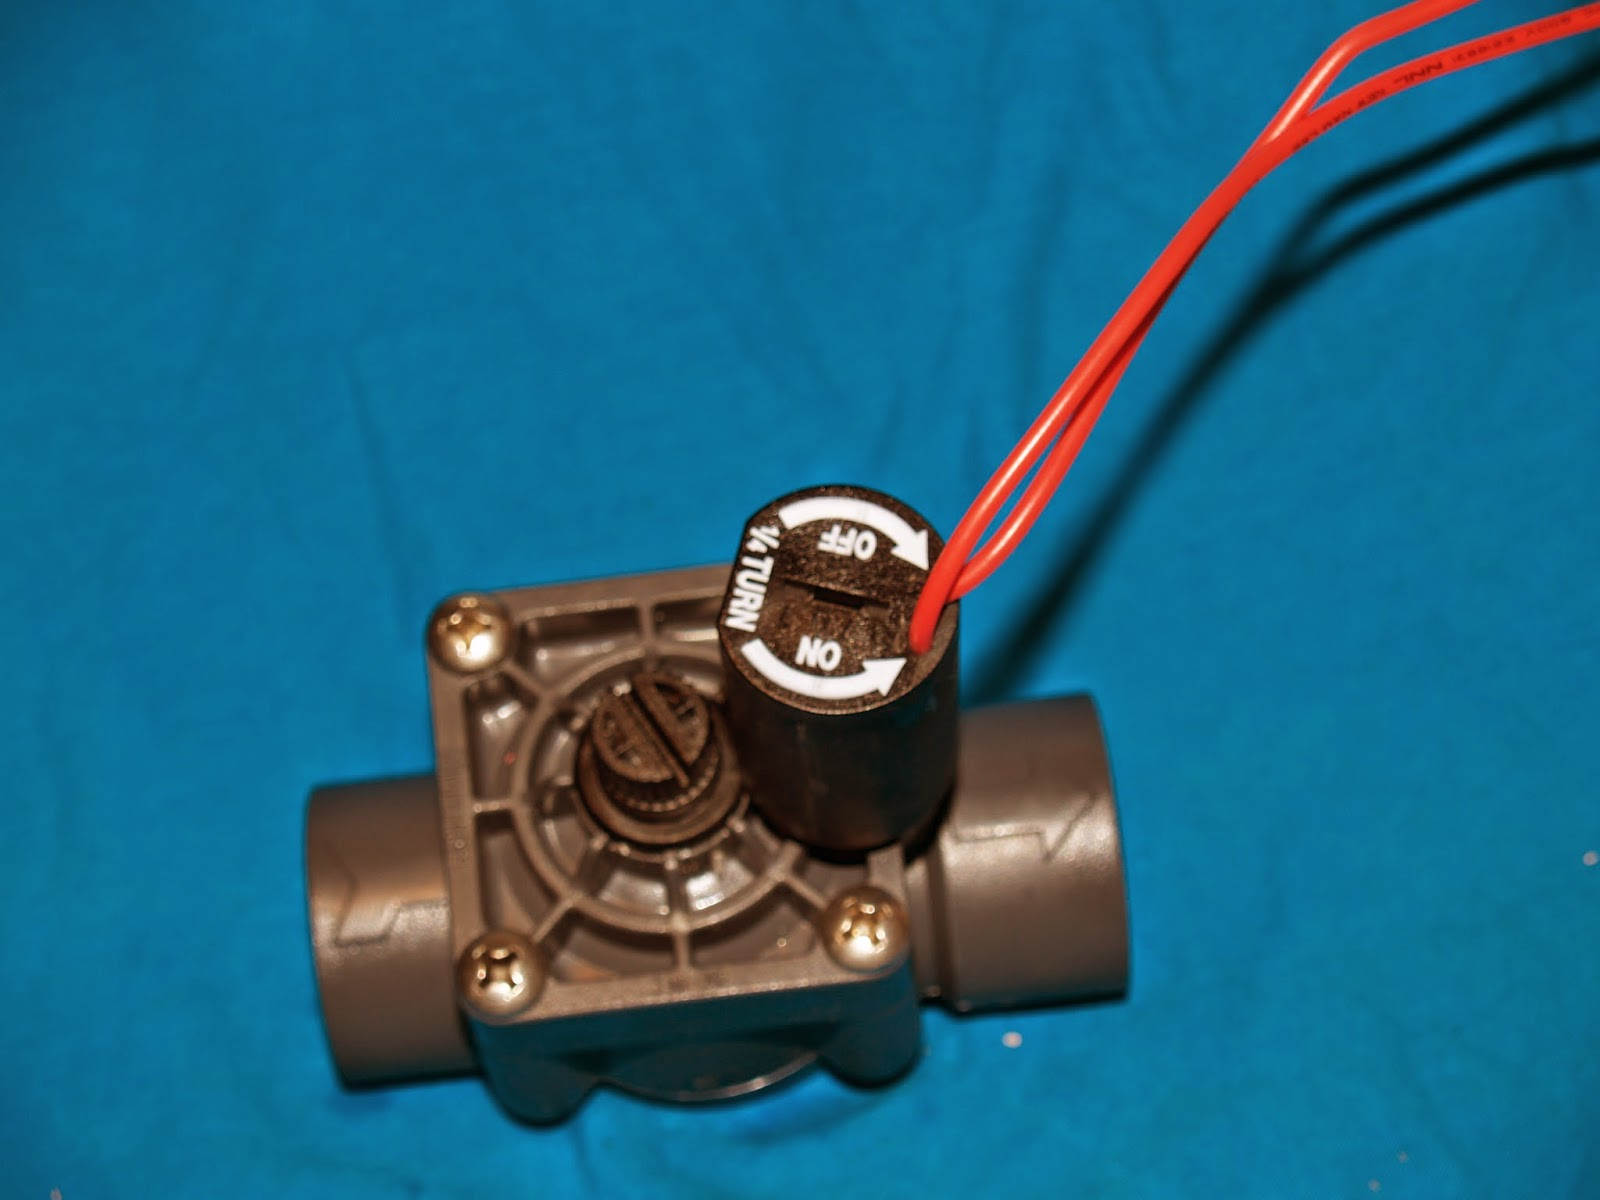 hunter sprinkler valve sprinkler system troubleshooting and lawn irrigation repair Actuator Wiring Diagram at bayanpartner.co